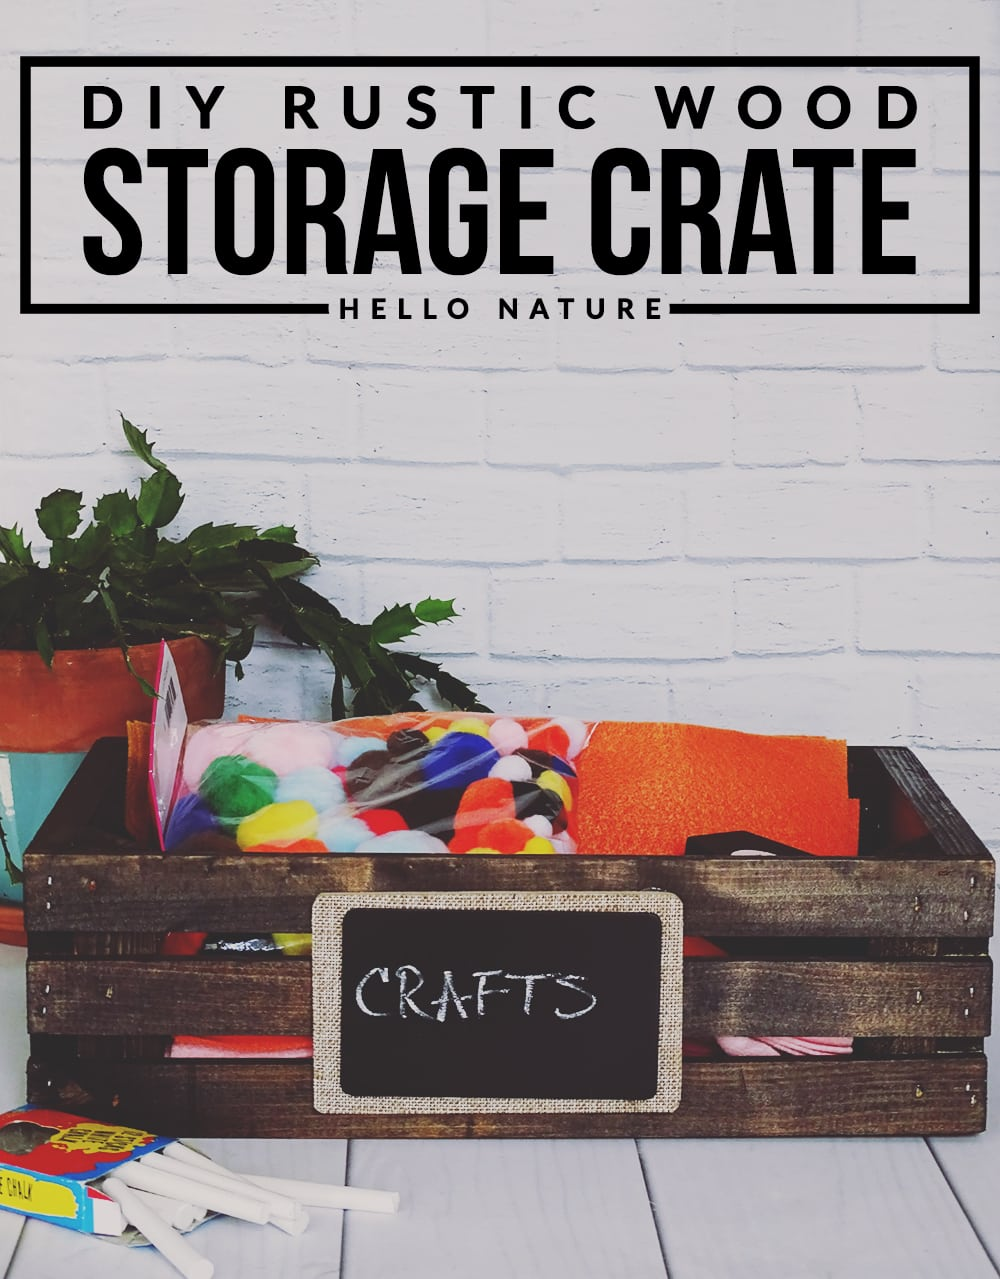 Want to add a bit of rustic charm and organization to your home? All you need is this simple to create wood storage crate DIY!